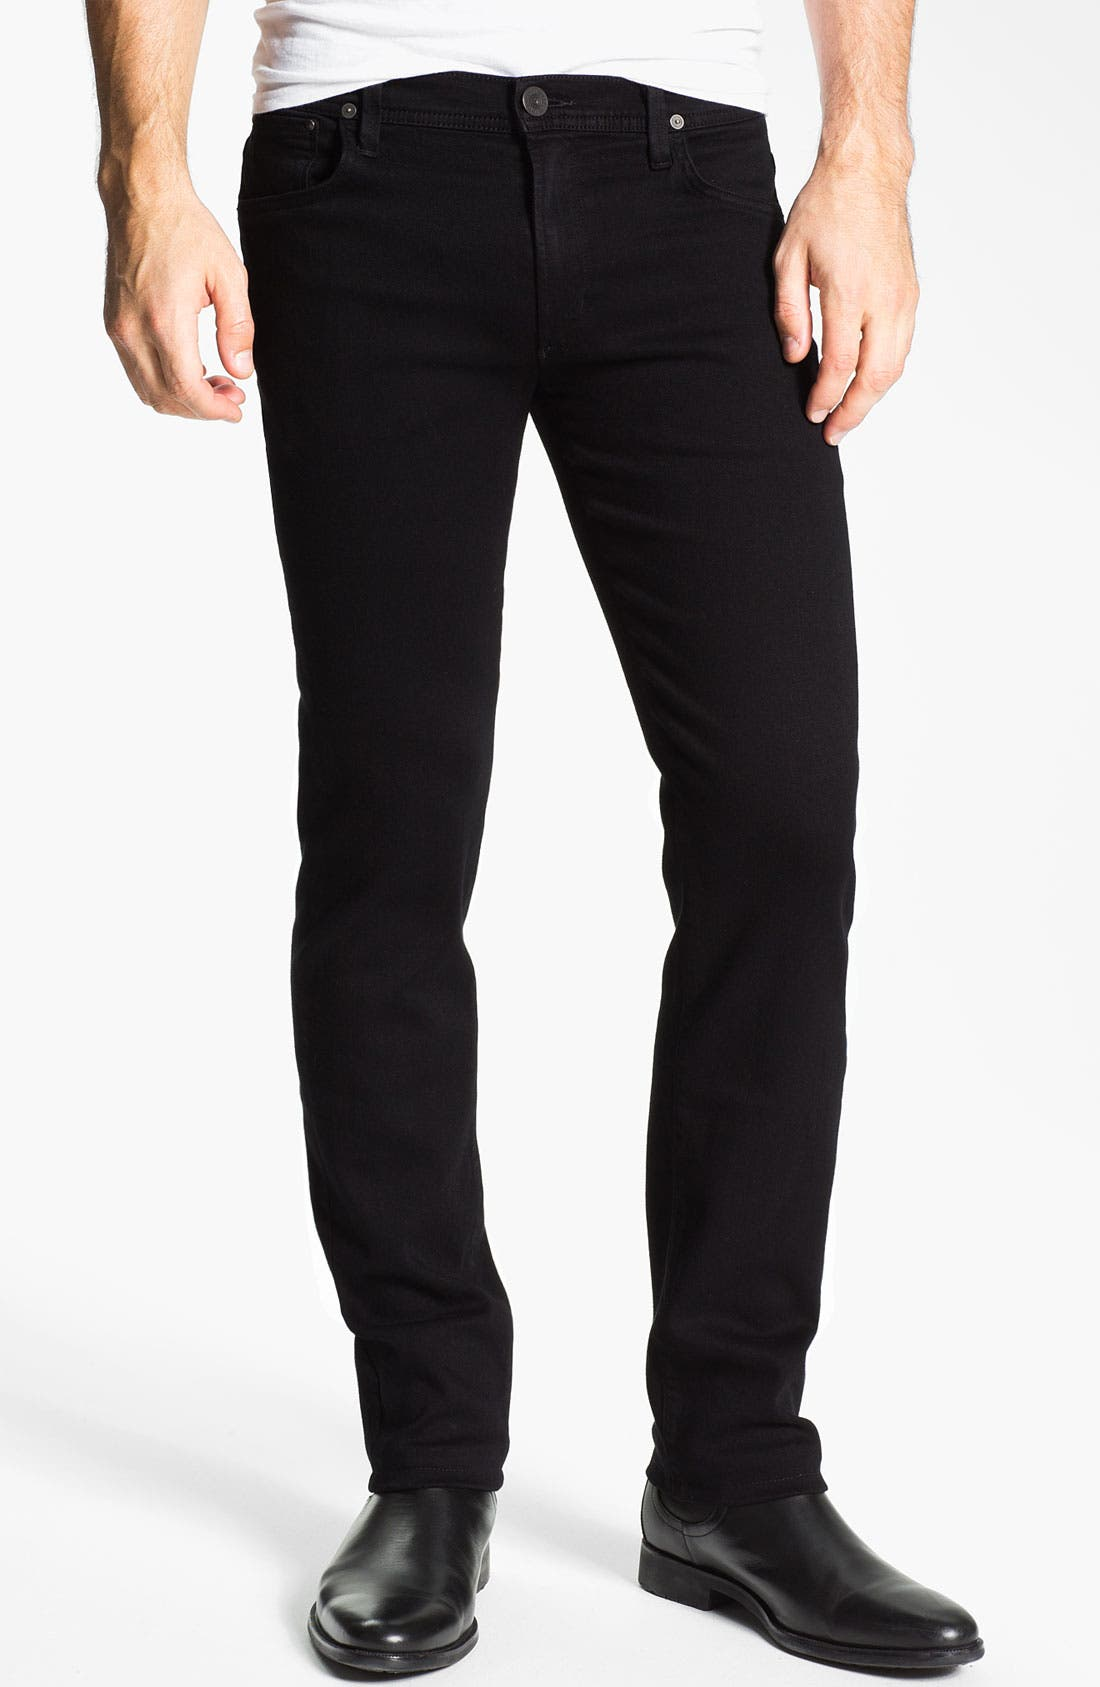 Alternate Image 1 Selected - Citizens of Humanity 'Adonis' Comfort Slim Fit Jeans (Brandon Black)